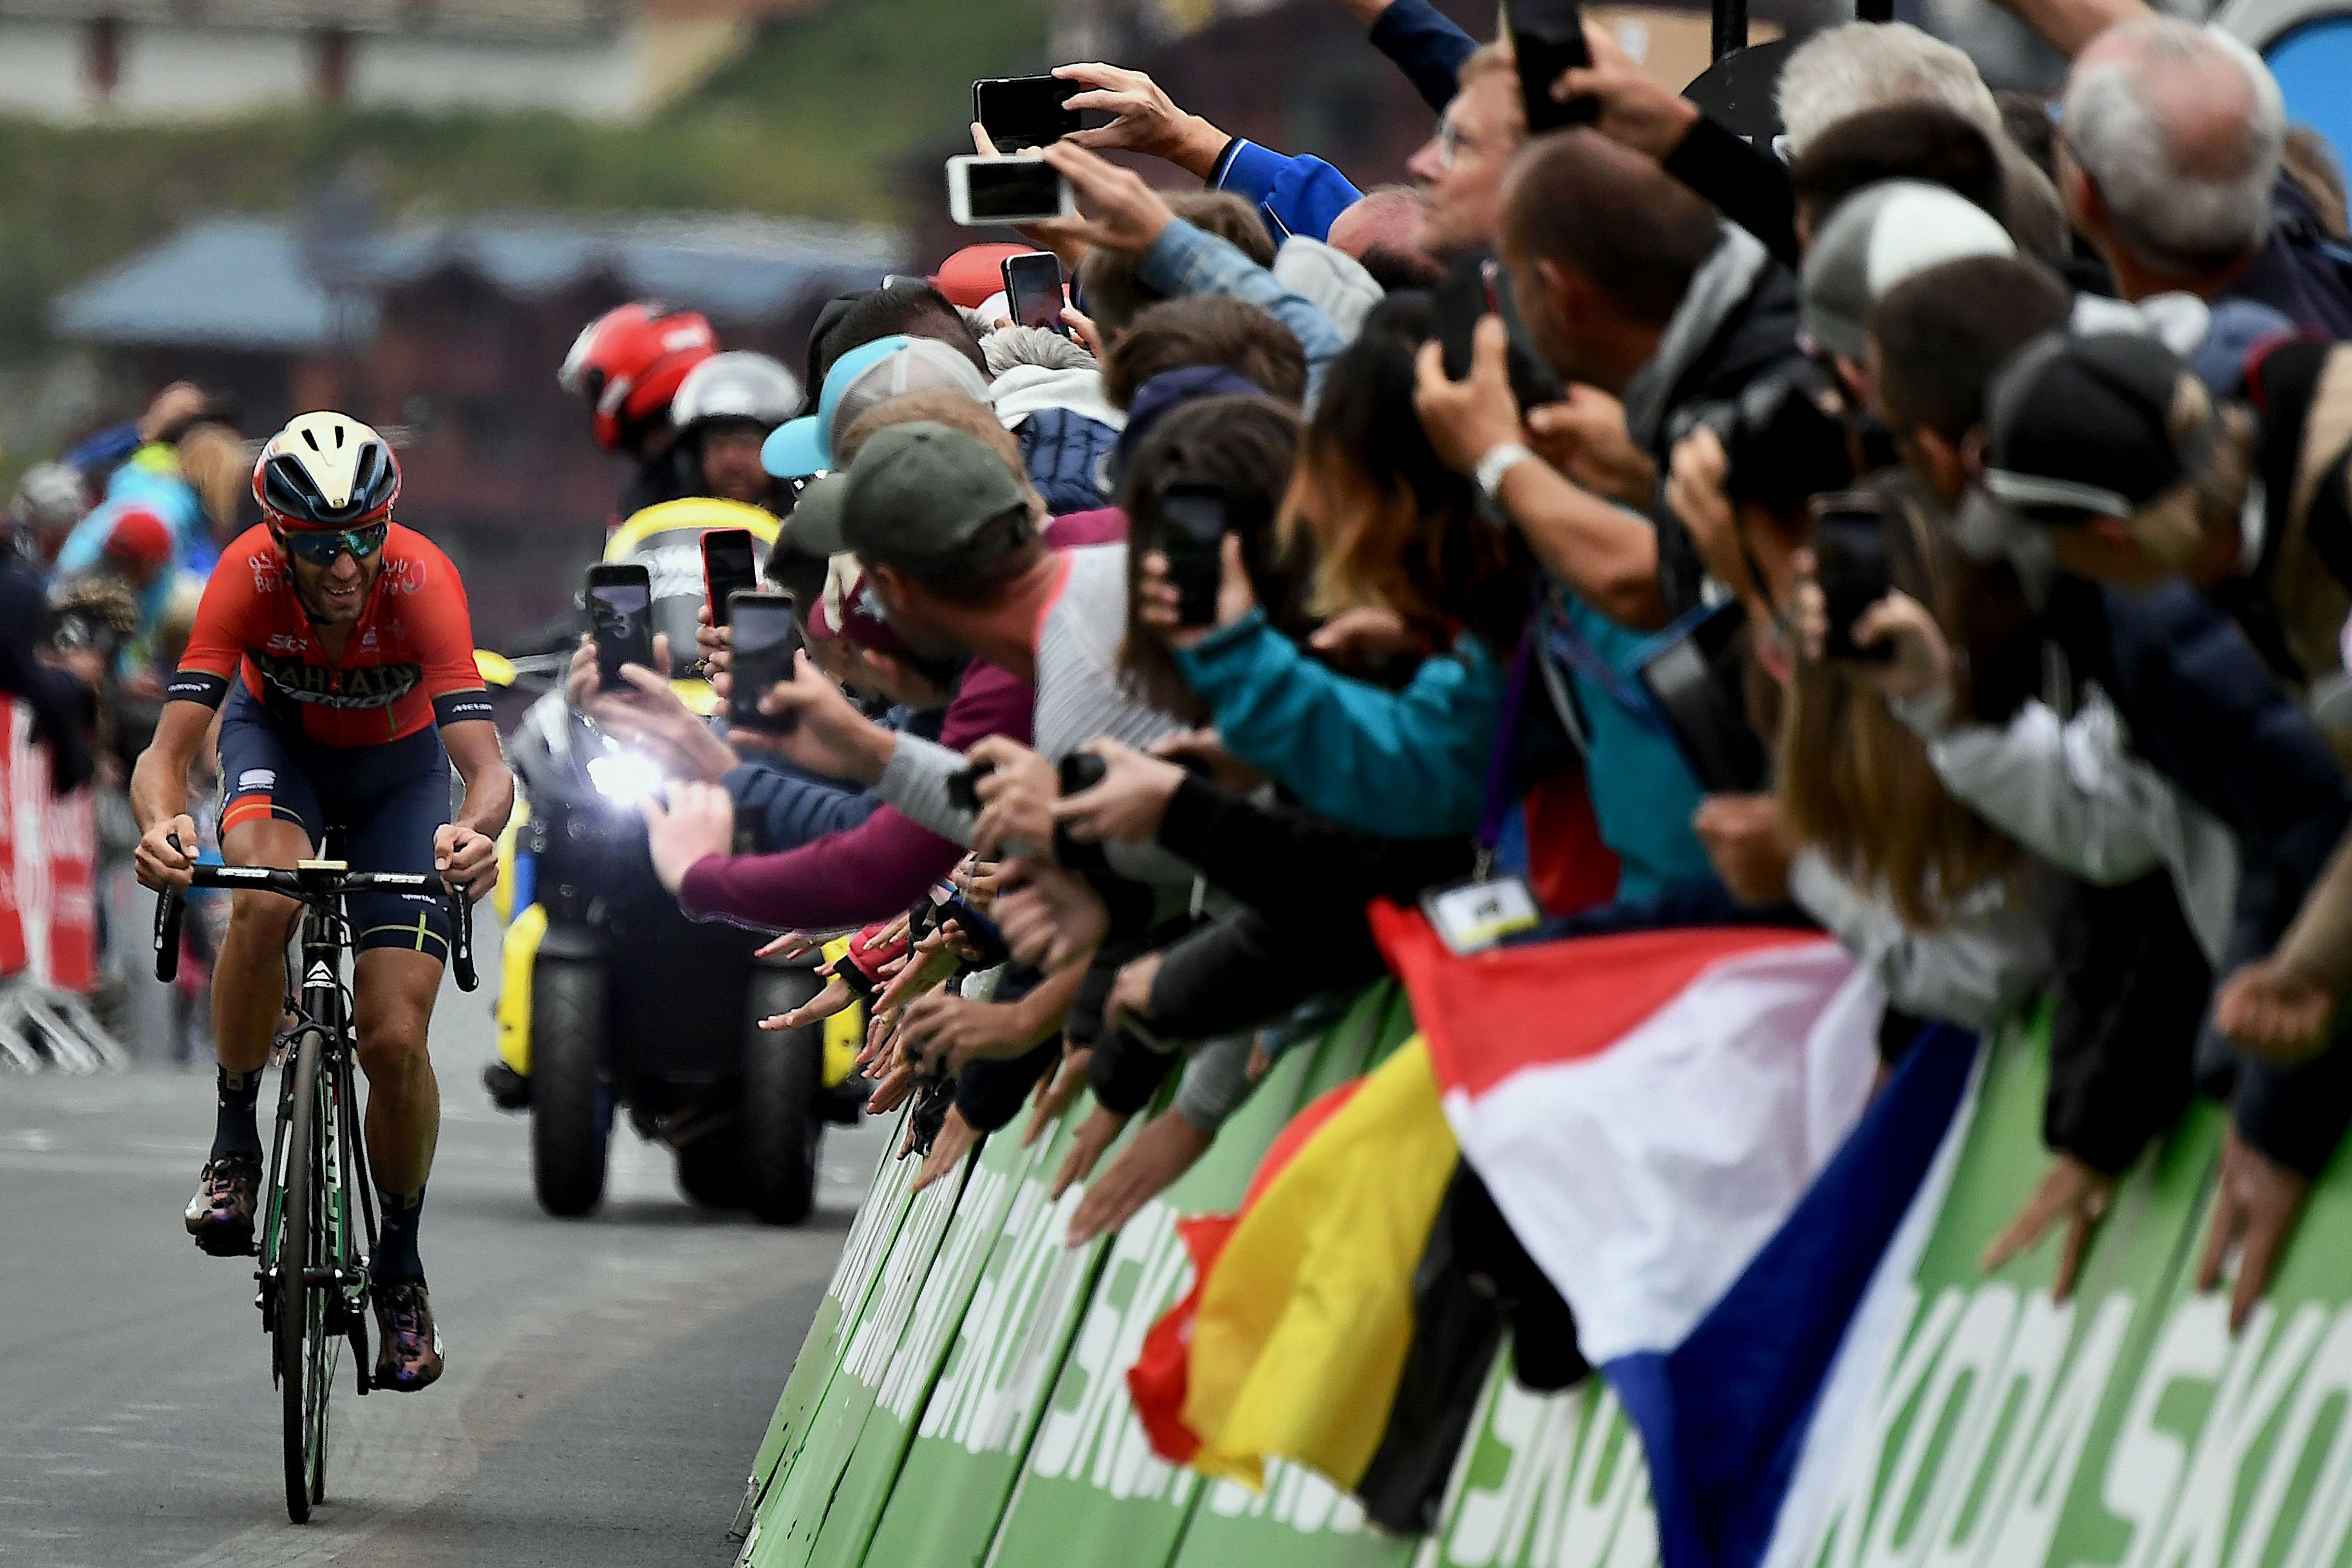 Fans cheer Italy's Vincenzo Nibali in the last kilometer before the finish line of the 20th stage of the Tour de France in Val Thorens in 2019.